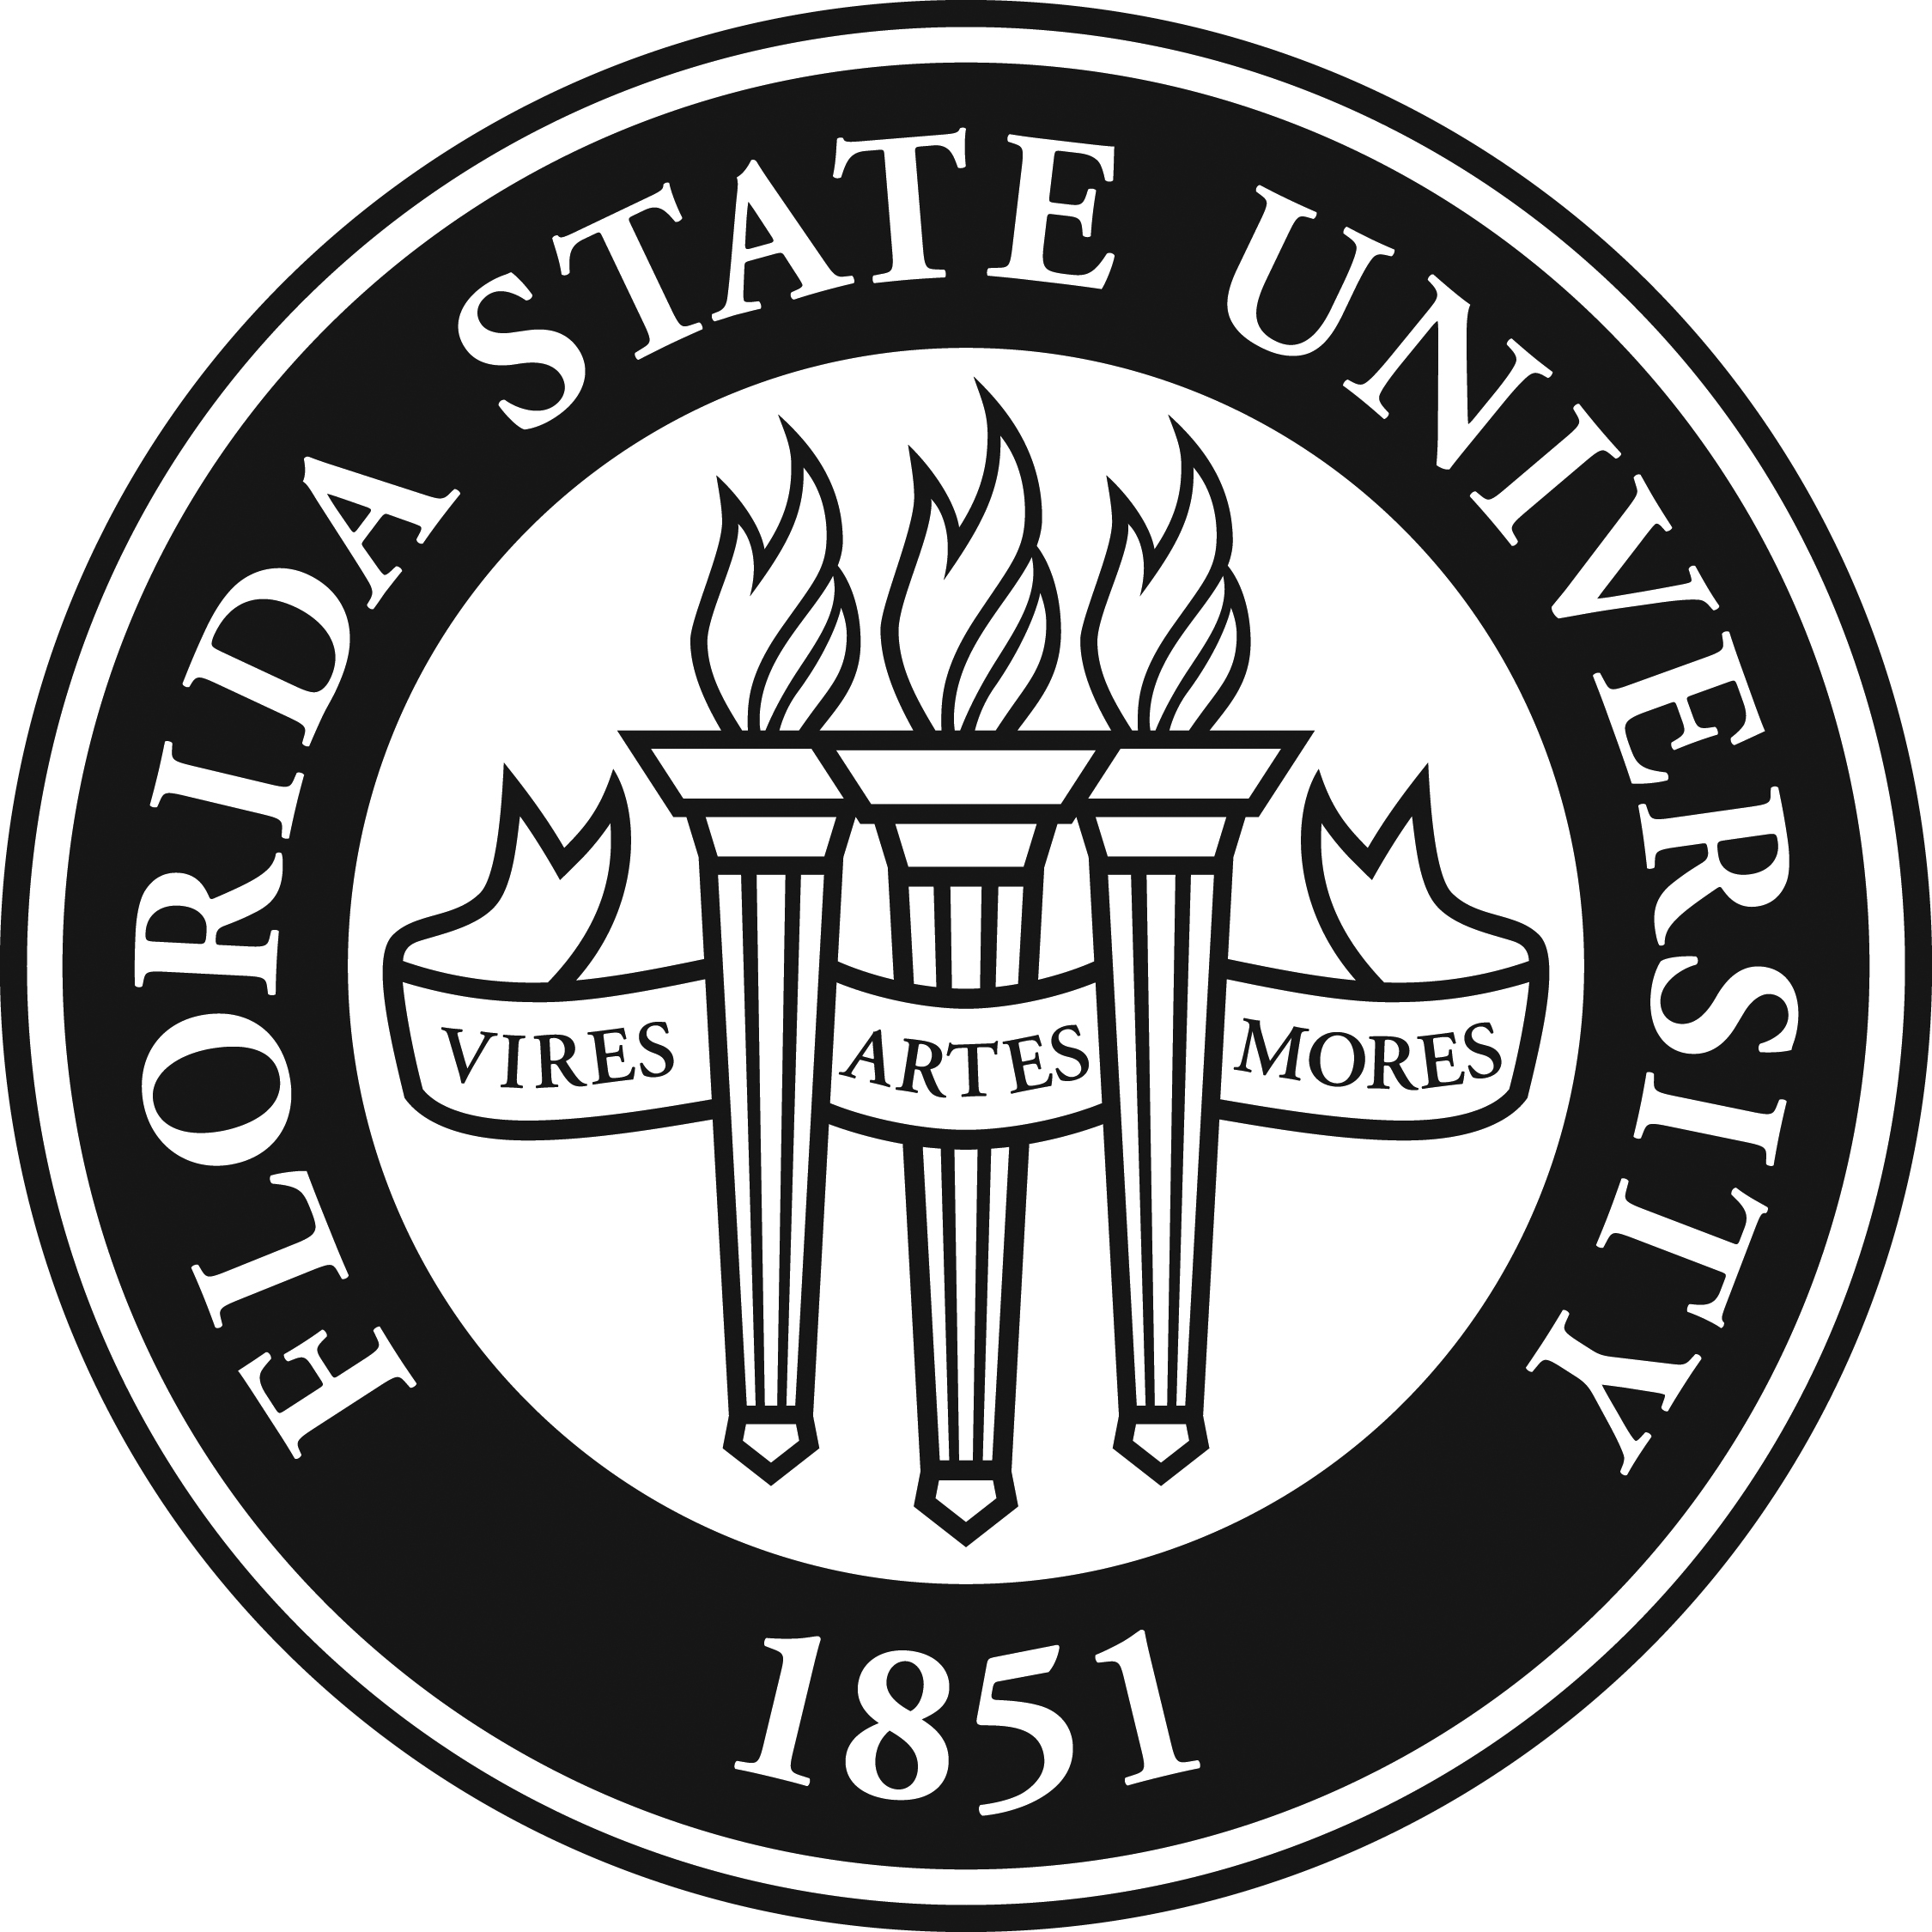 vires artes mores essay The florida state university will honor its in which three upper-class florida state students pass the torches representing vires (strength), artes (skill) and mores the torch recipients for the class of 2014 are the three winners of florida state's annual vires, artes, mores essay.